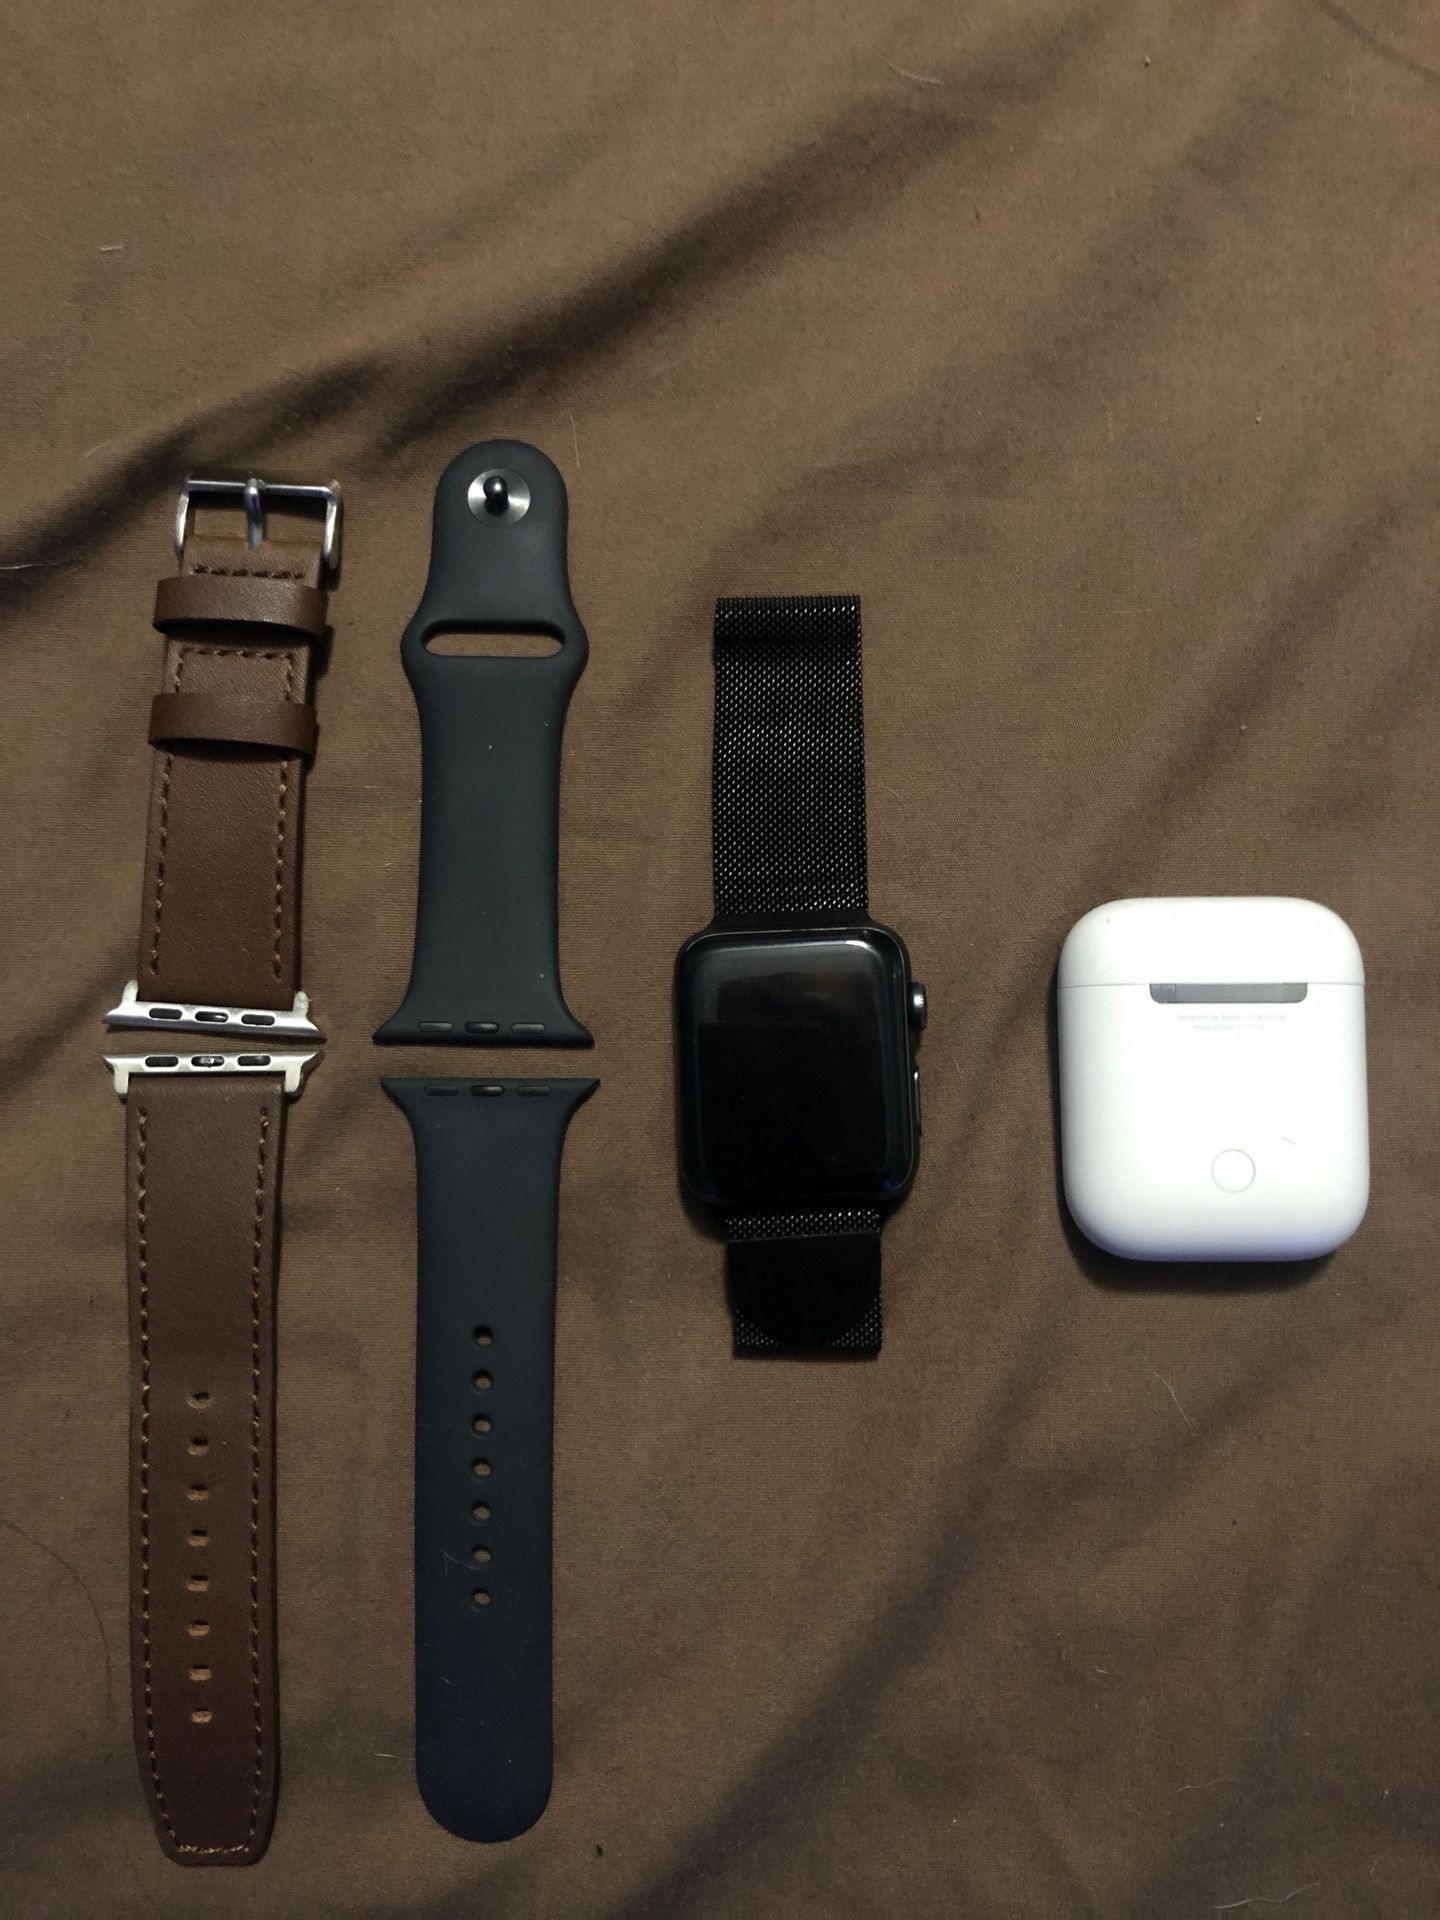 Apple Watch series 3 with 3 bands and AirPods